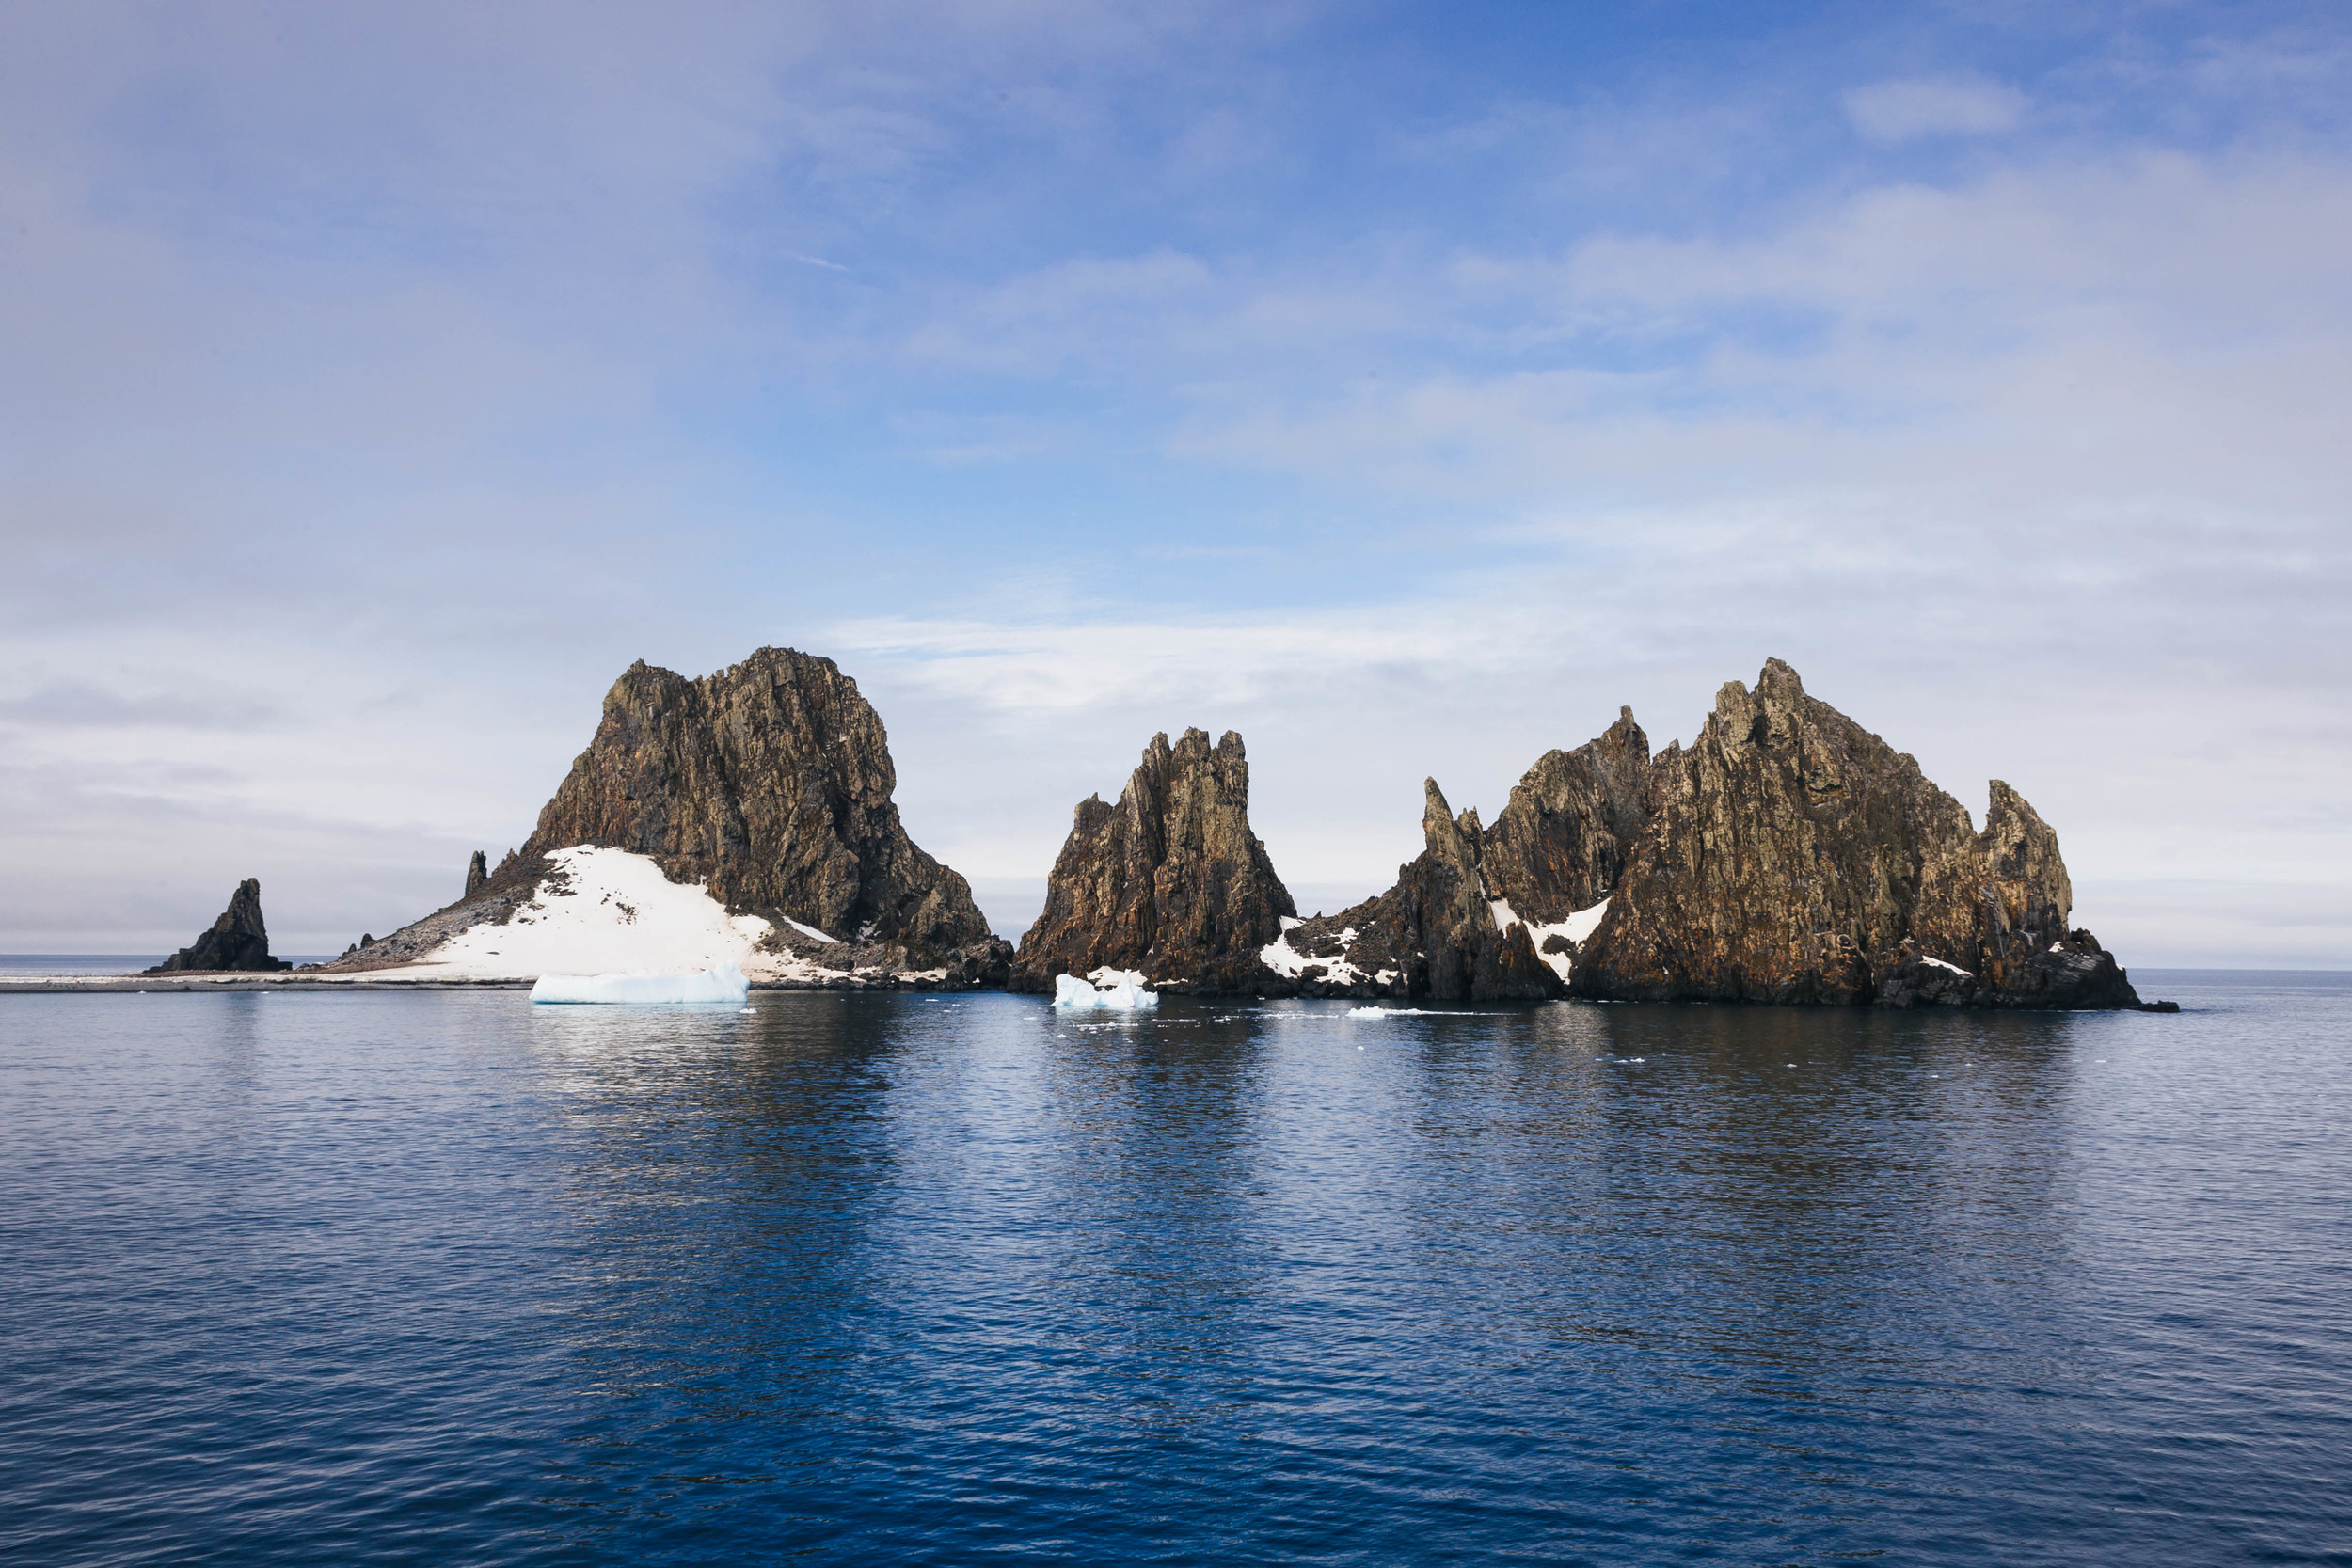 The mountainous landscape atFort Point in the South Shetland Islands.